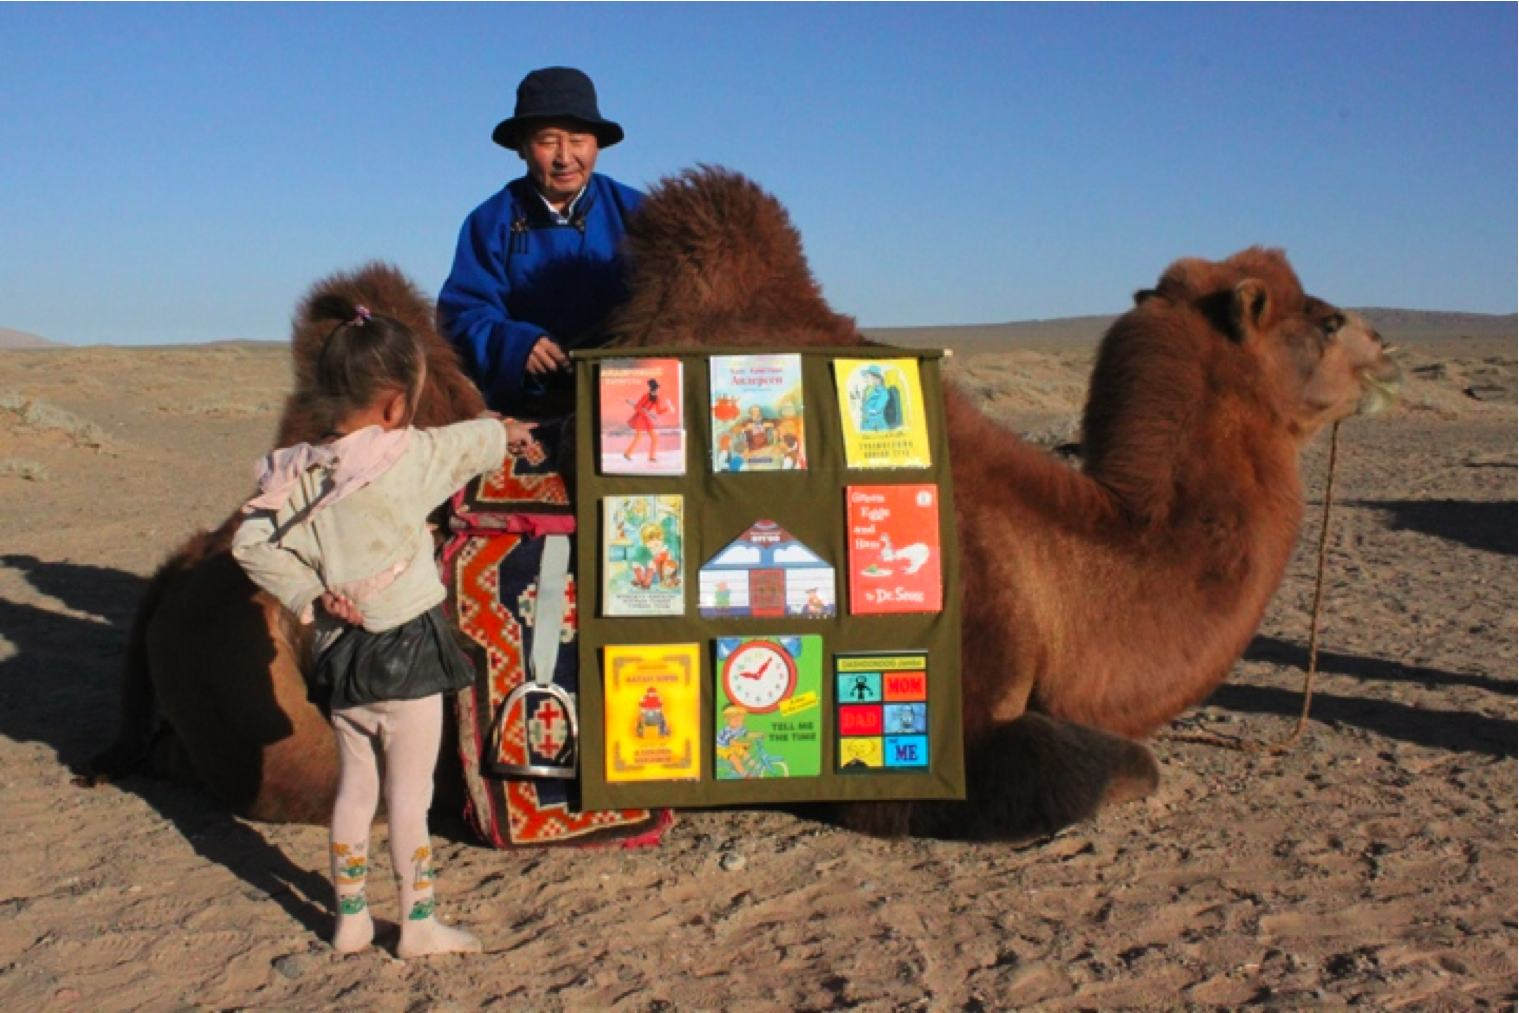 Wonderfully Witty Quotes and Sayings About Camels